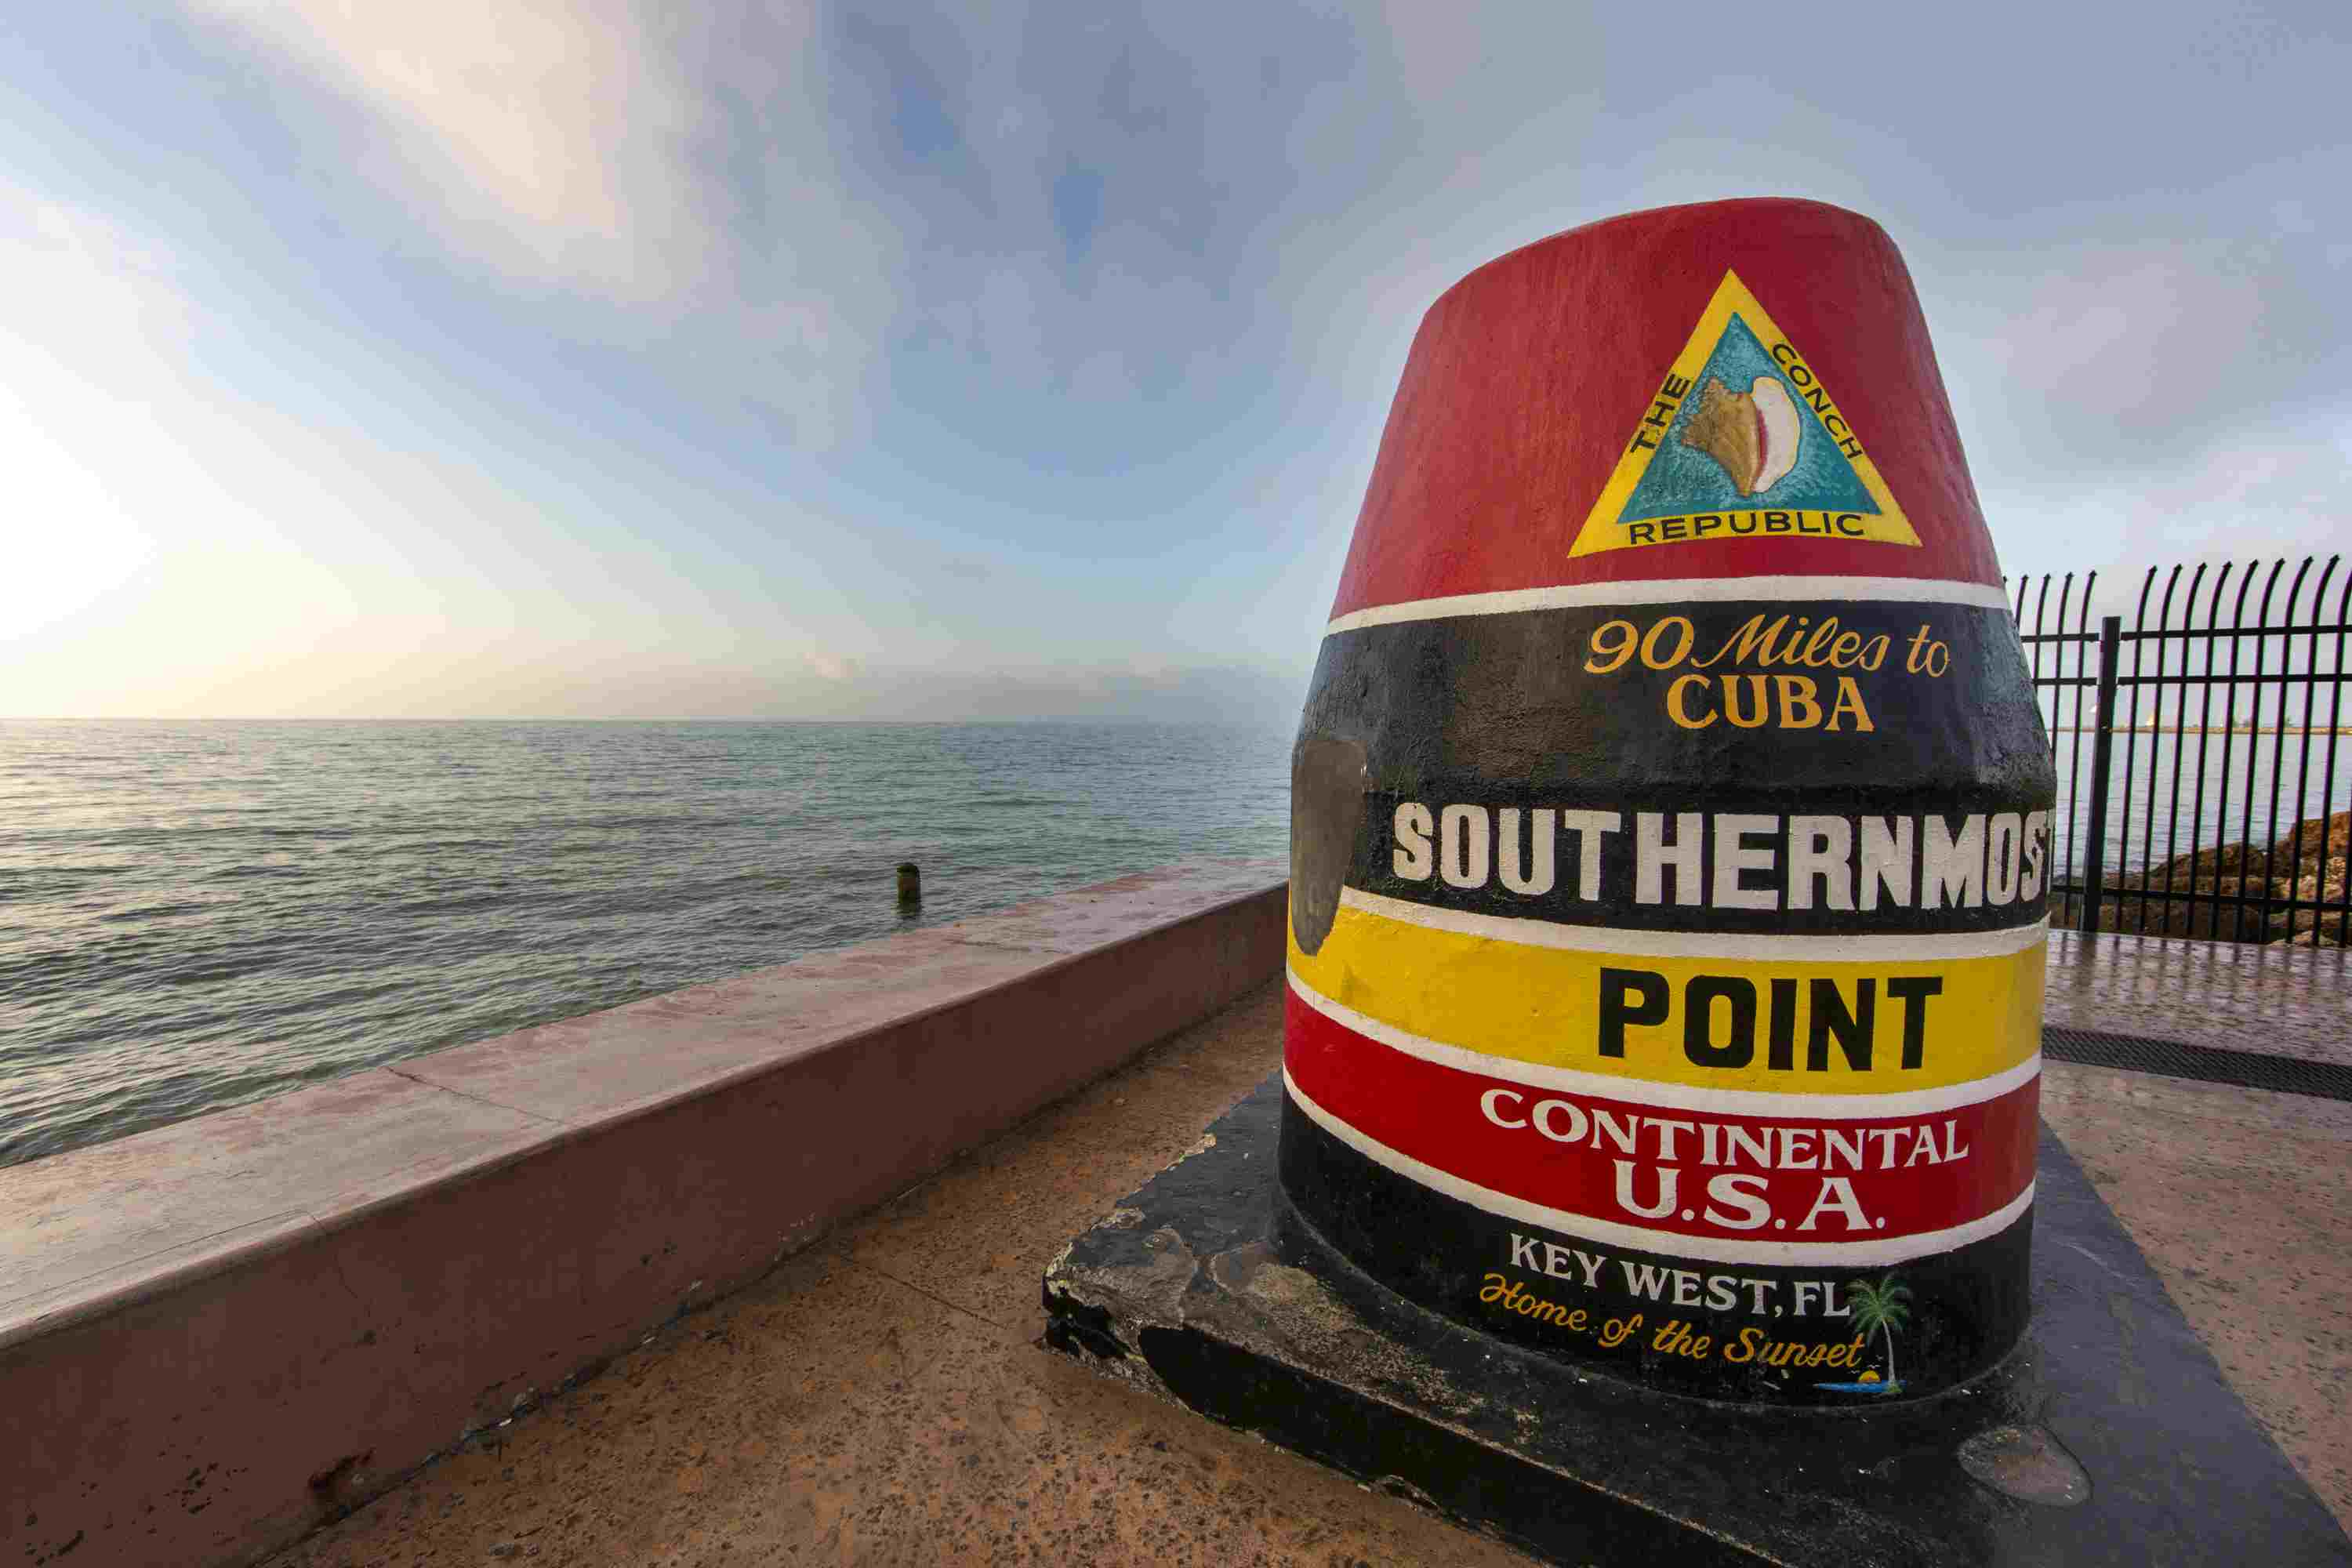 Buoy marking Key West as the southernmost point in the USA